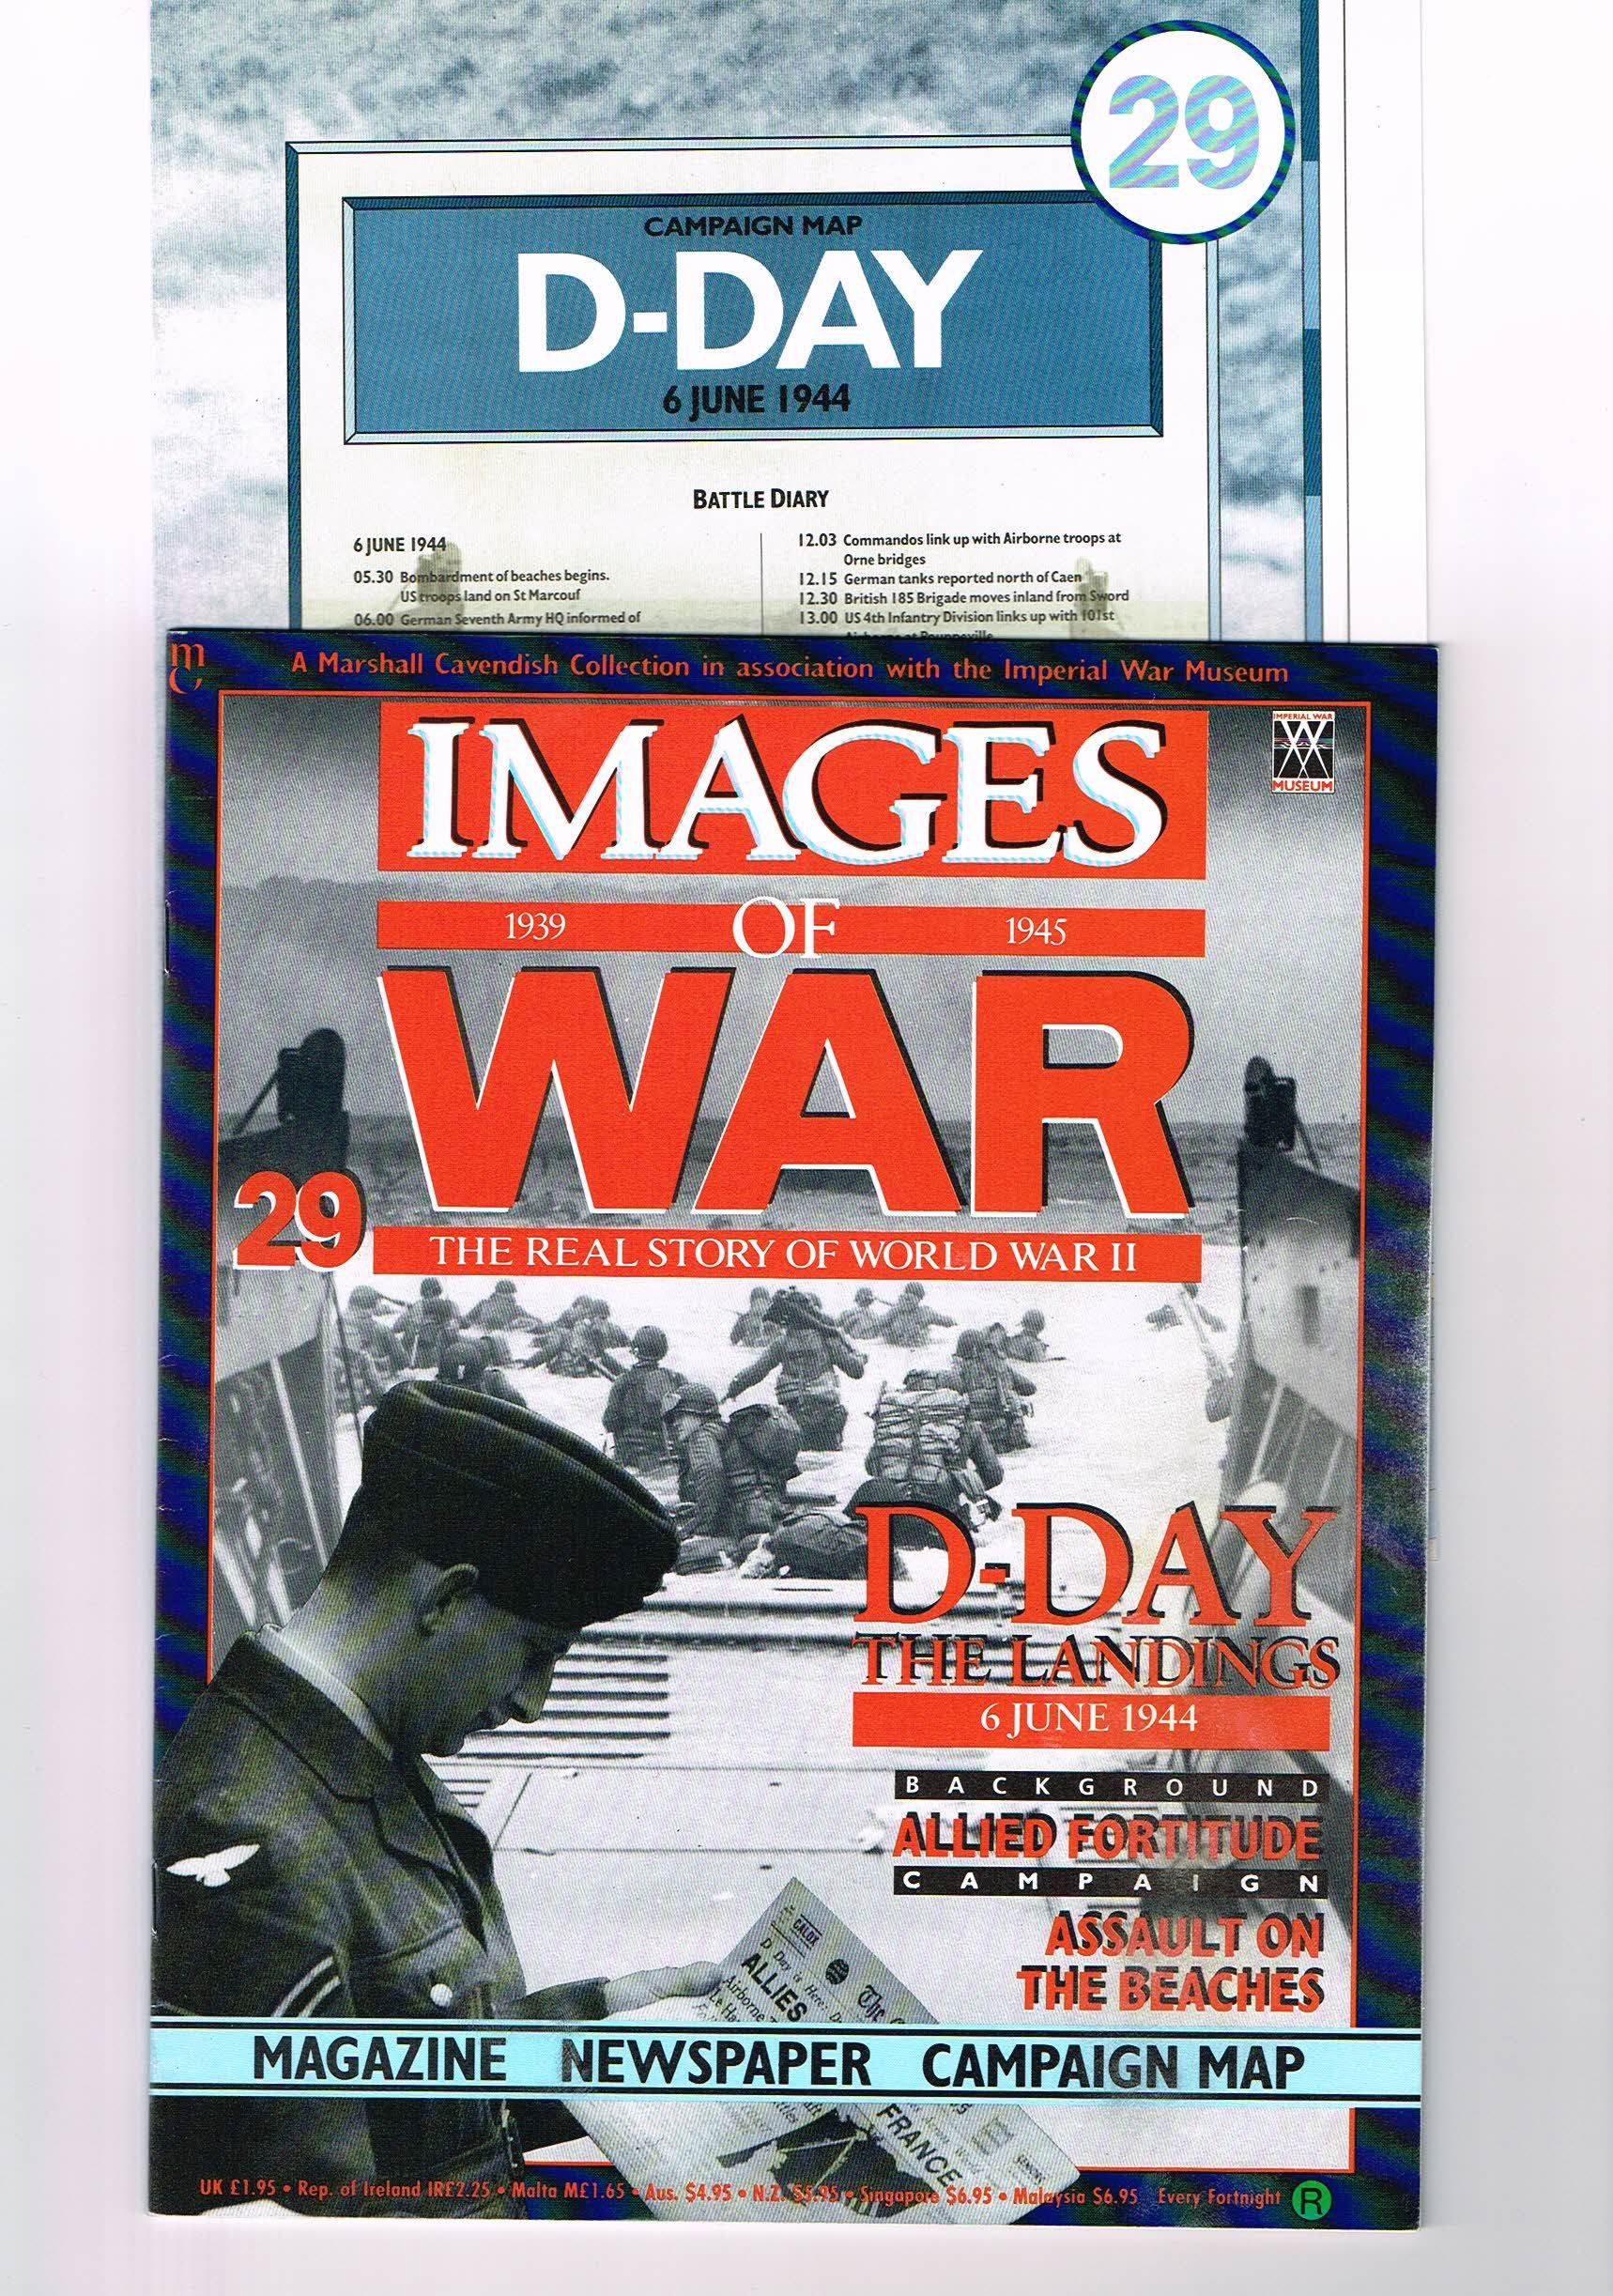 Images of War no29 D DAY LANDINGS Magazine